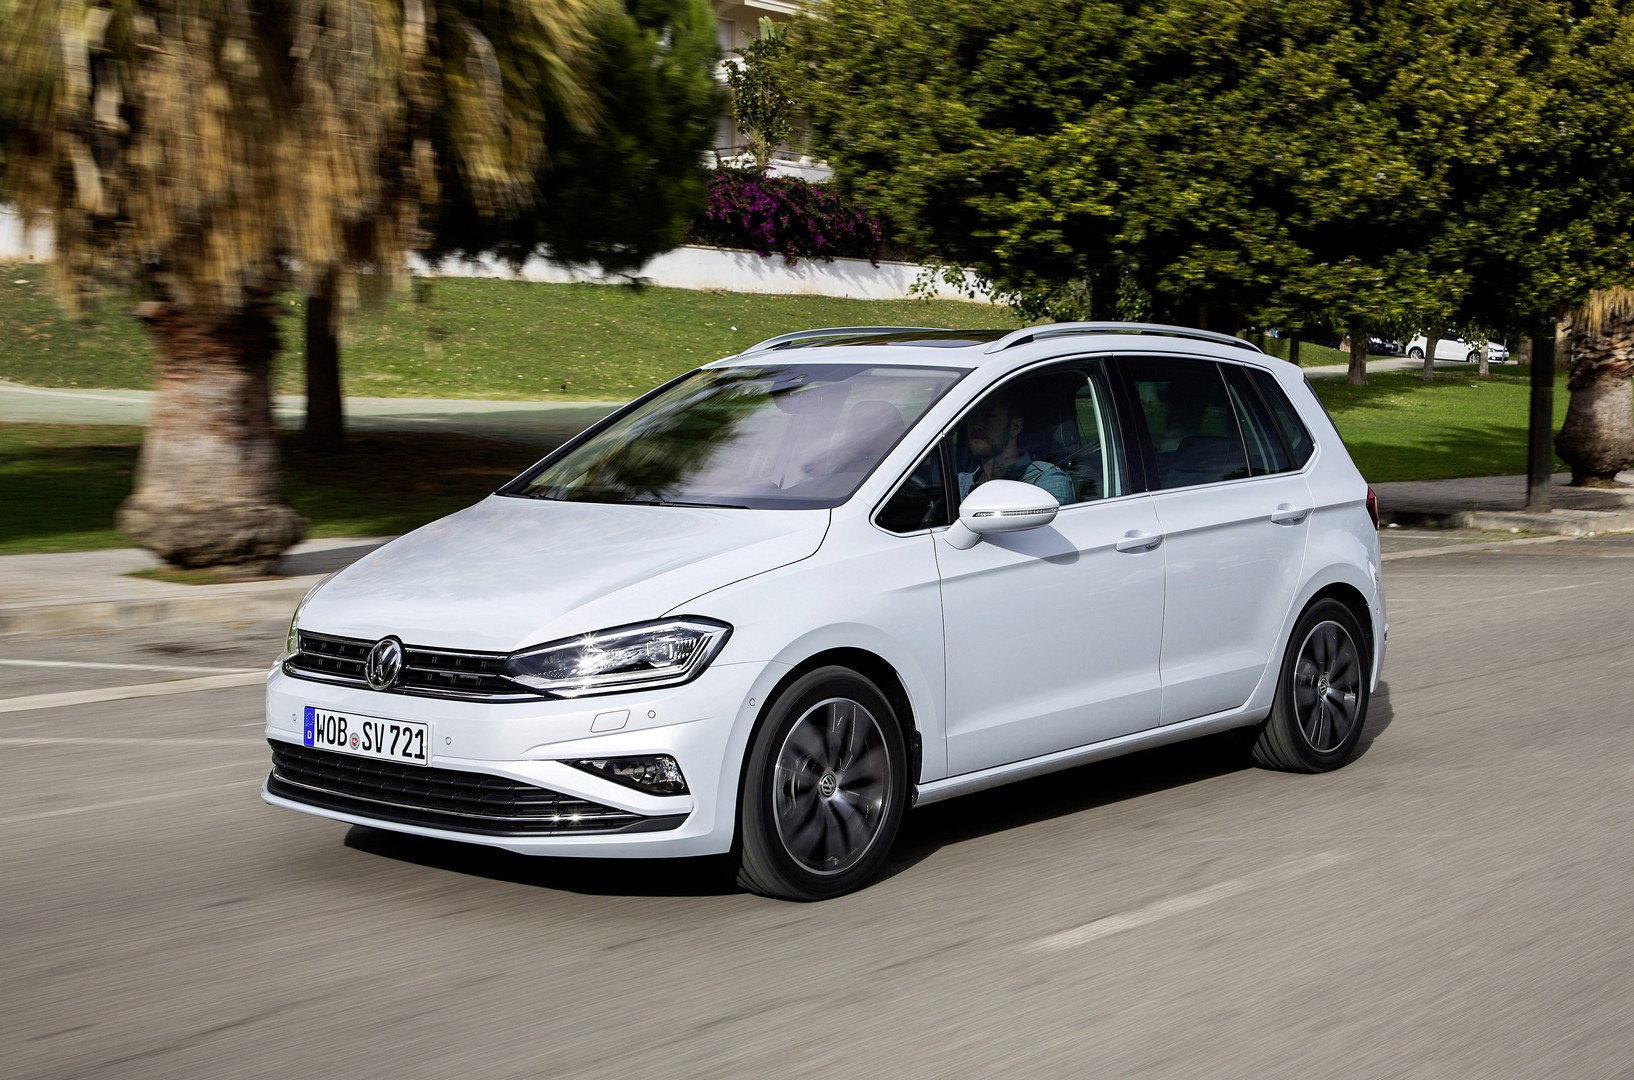 2018 Volkswagen Golf Sportsvan Shows